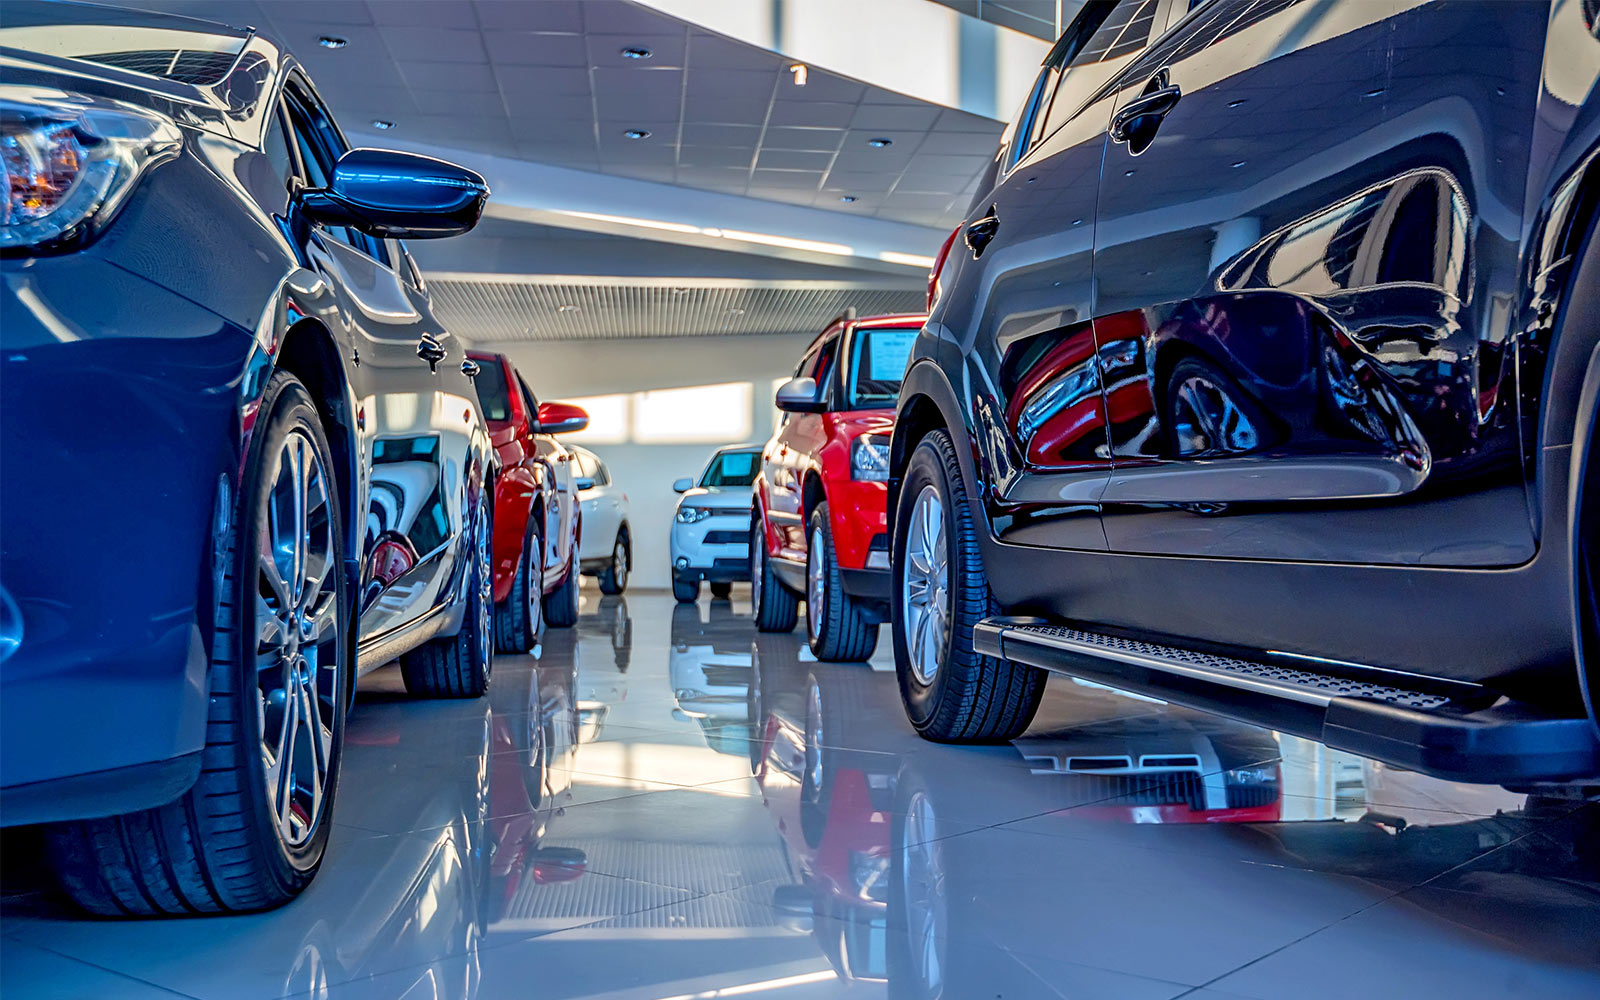 Ground view of cars in a dealership